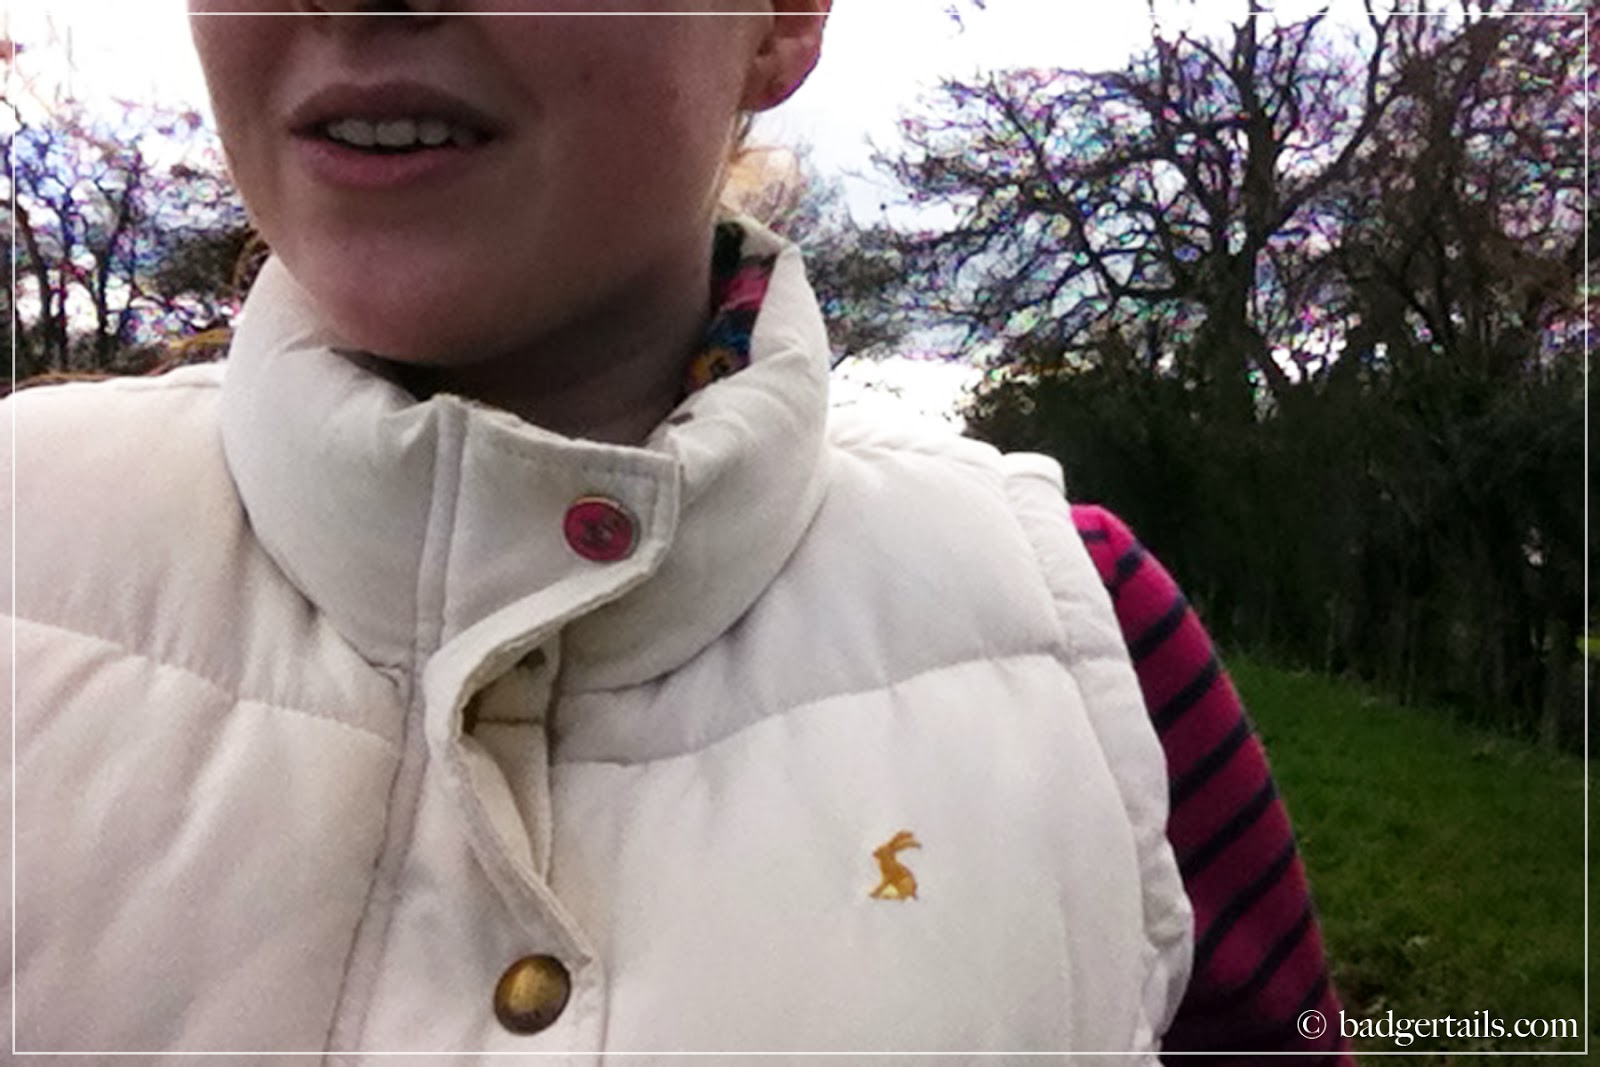 woman wearing white joules gilet and stripy joules top in english countryside field